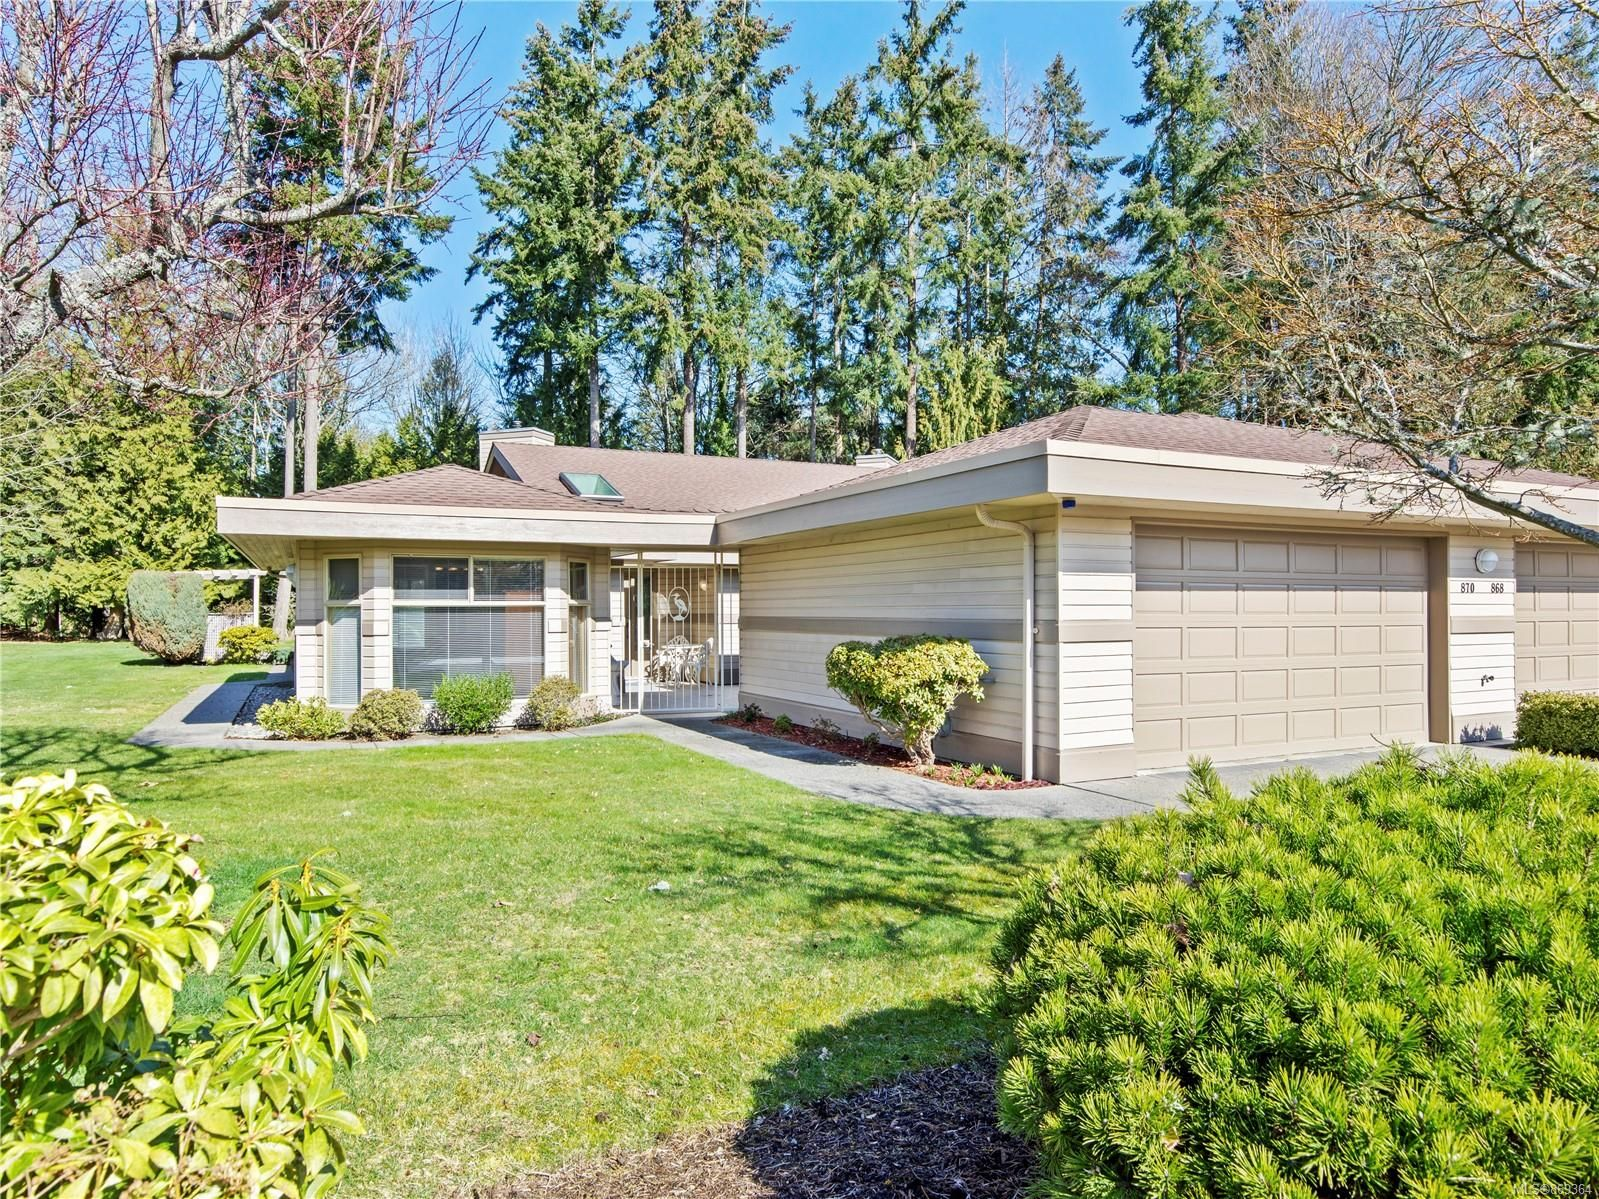 Main Photo: 870 LAKES Blvd in : PQ Parksville Row/Townhouse for sale (Parksville/Qualicum)  : MLS®# 869364